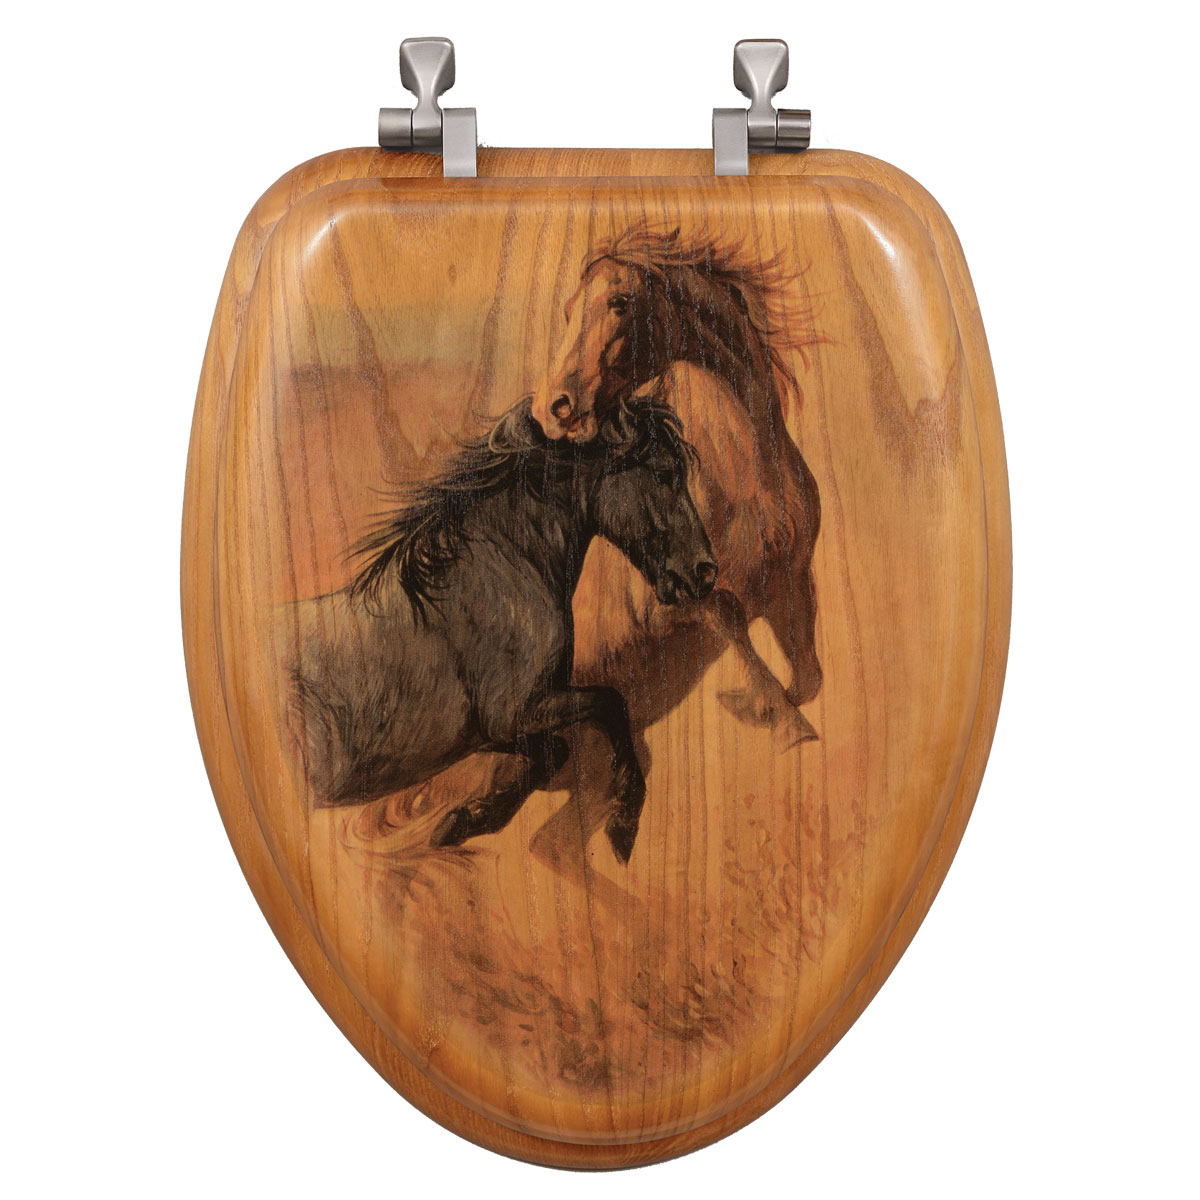 Black Forest Decor Challenged toilet seat - elongated